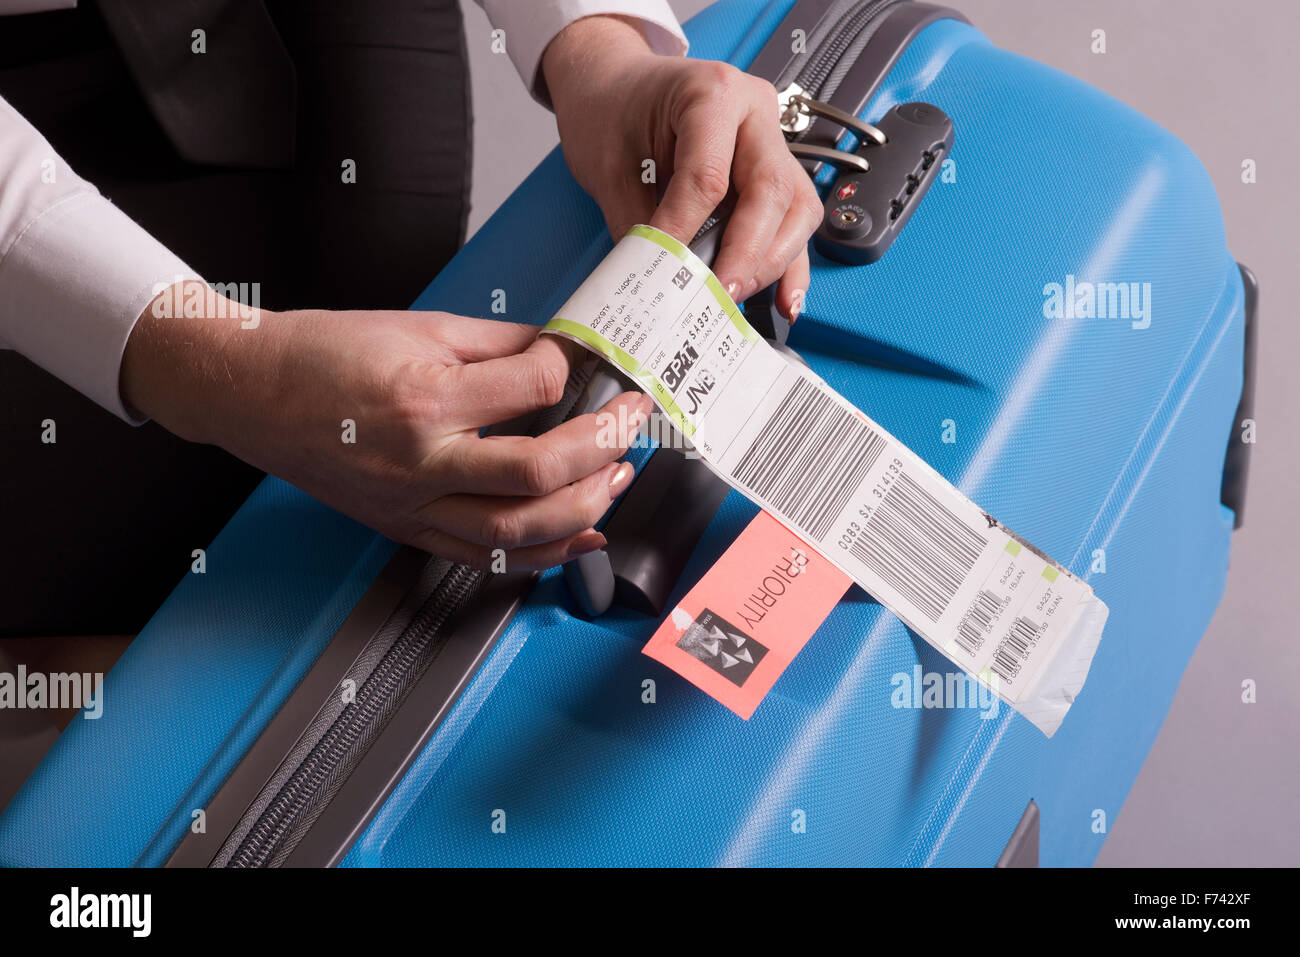 Priority Tag: Airline Check In Luggage Tag Being Attached To A Suitcase